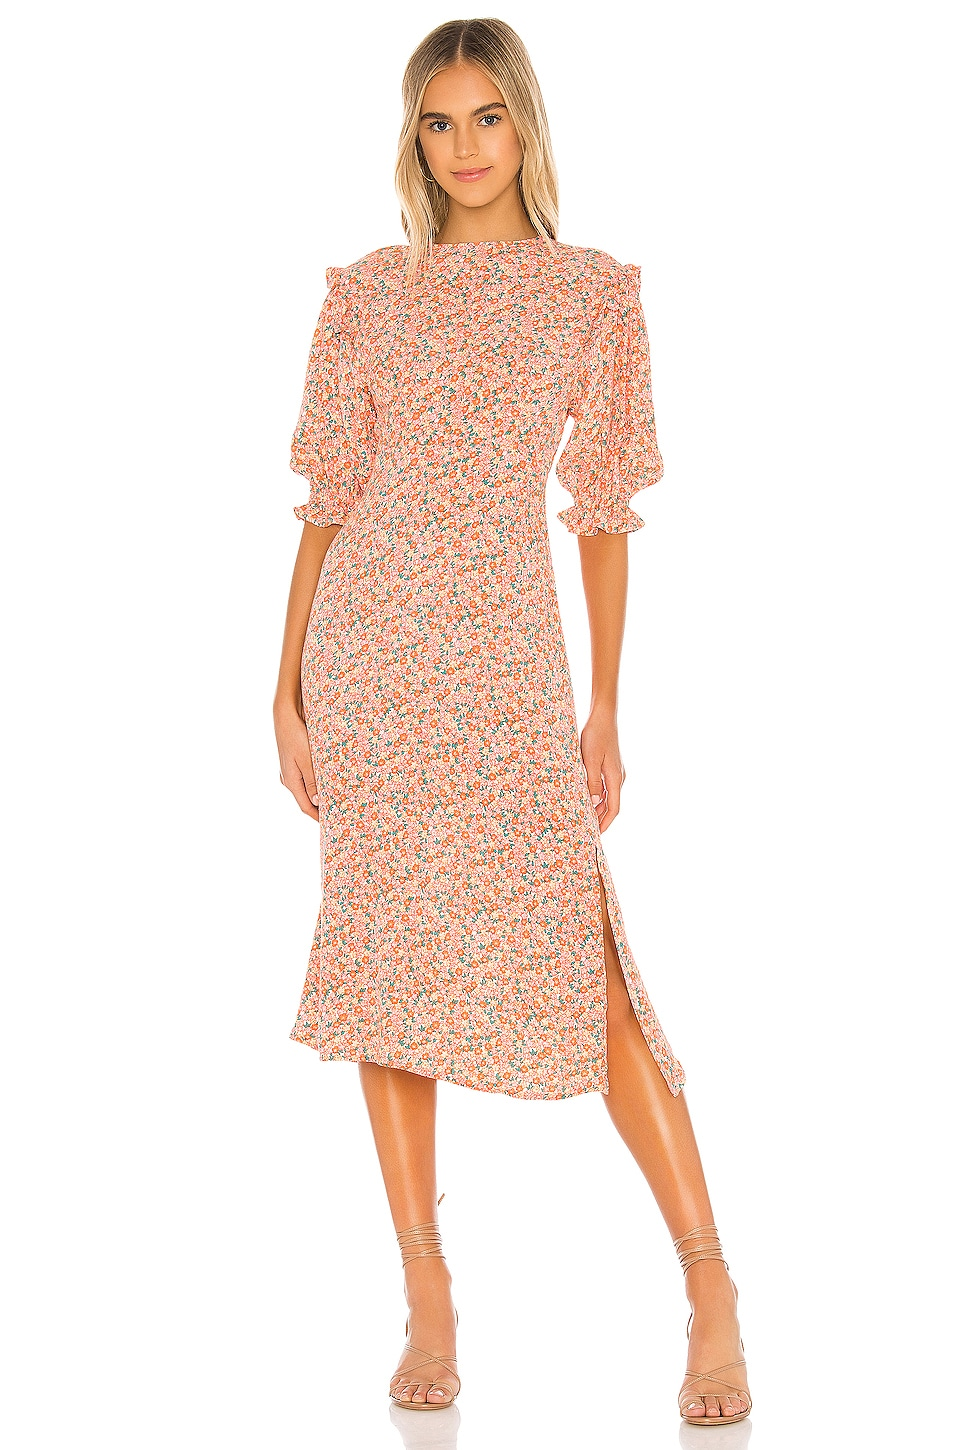 FAITHFULL THE BRAND Jean-Marie Midi Dress in Mathiola Floral